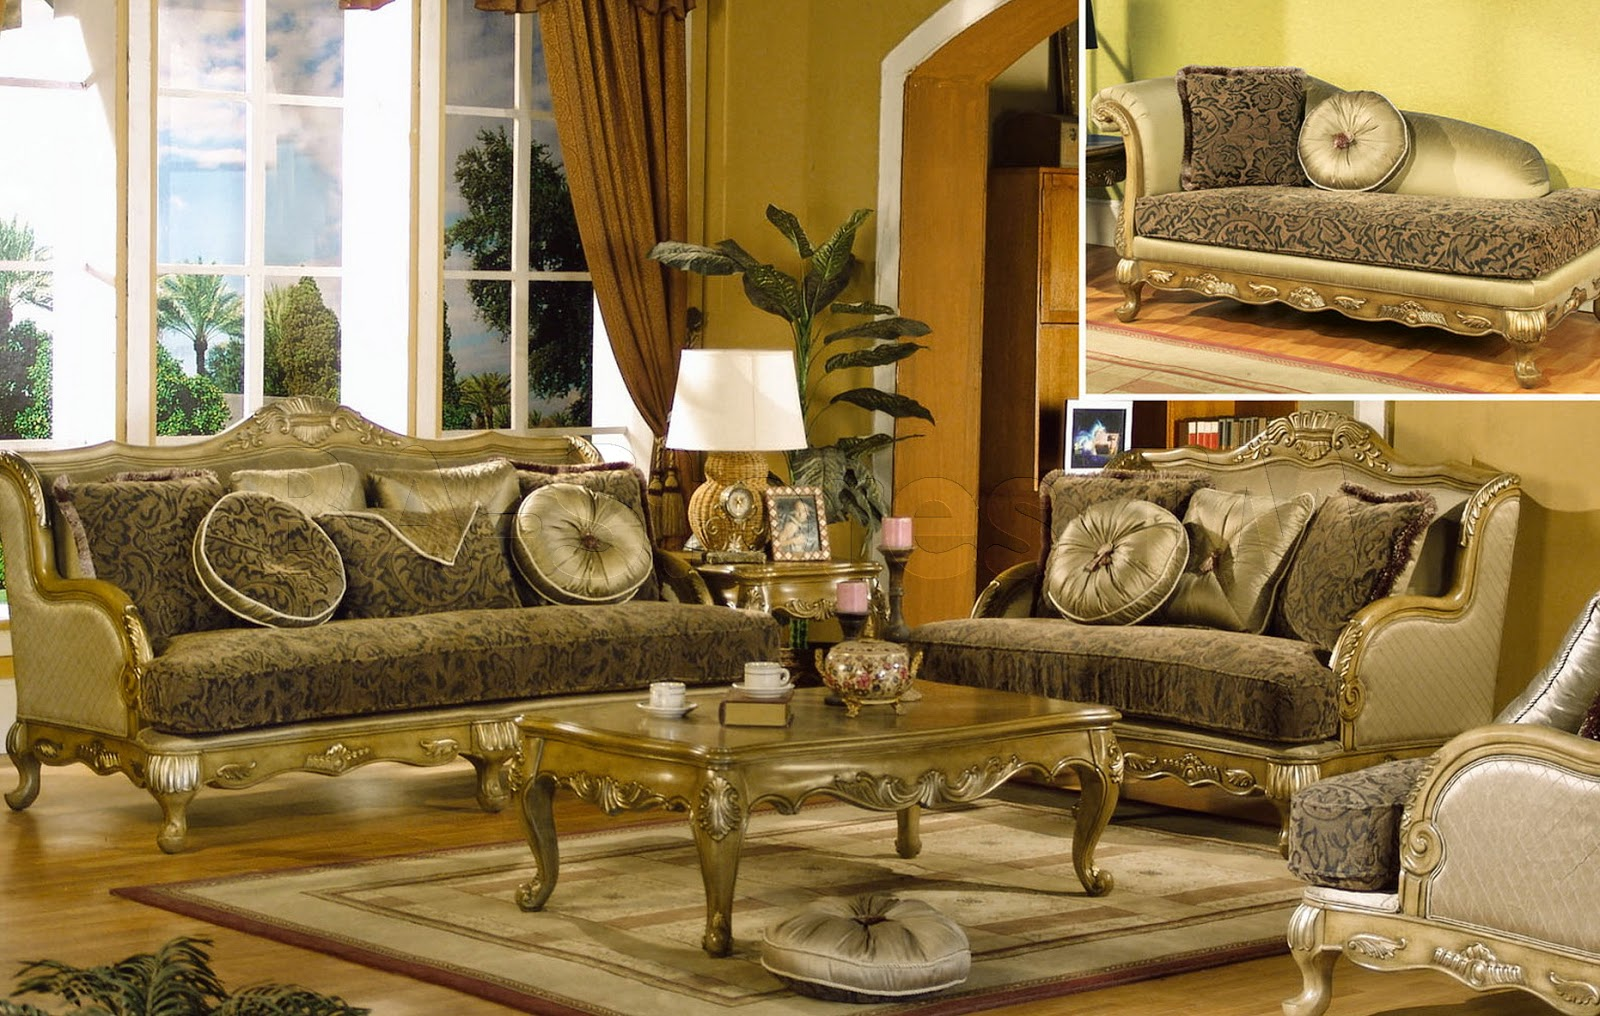 French Provincial Living Rooms Room Firewood Holder Furniture Apartment Interior Design